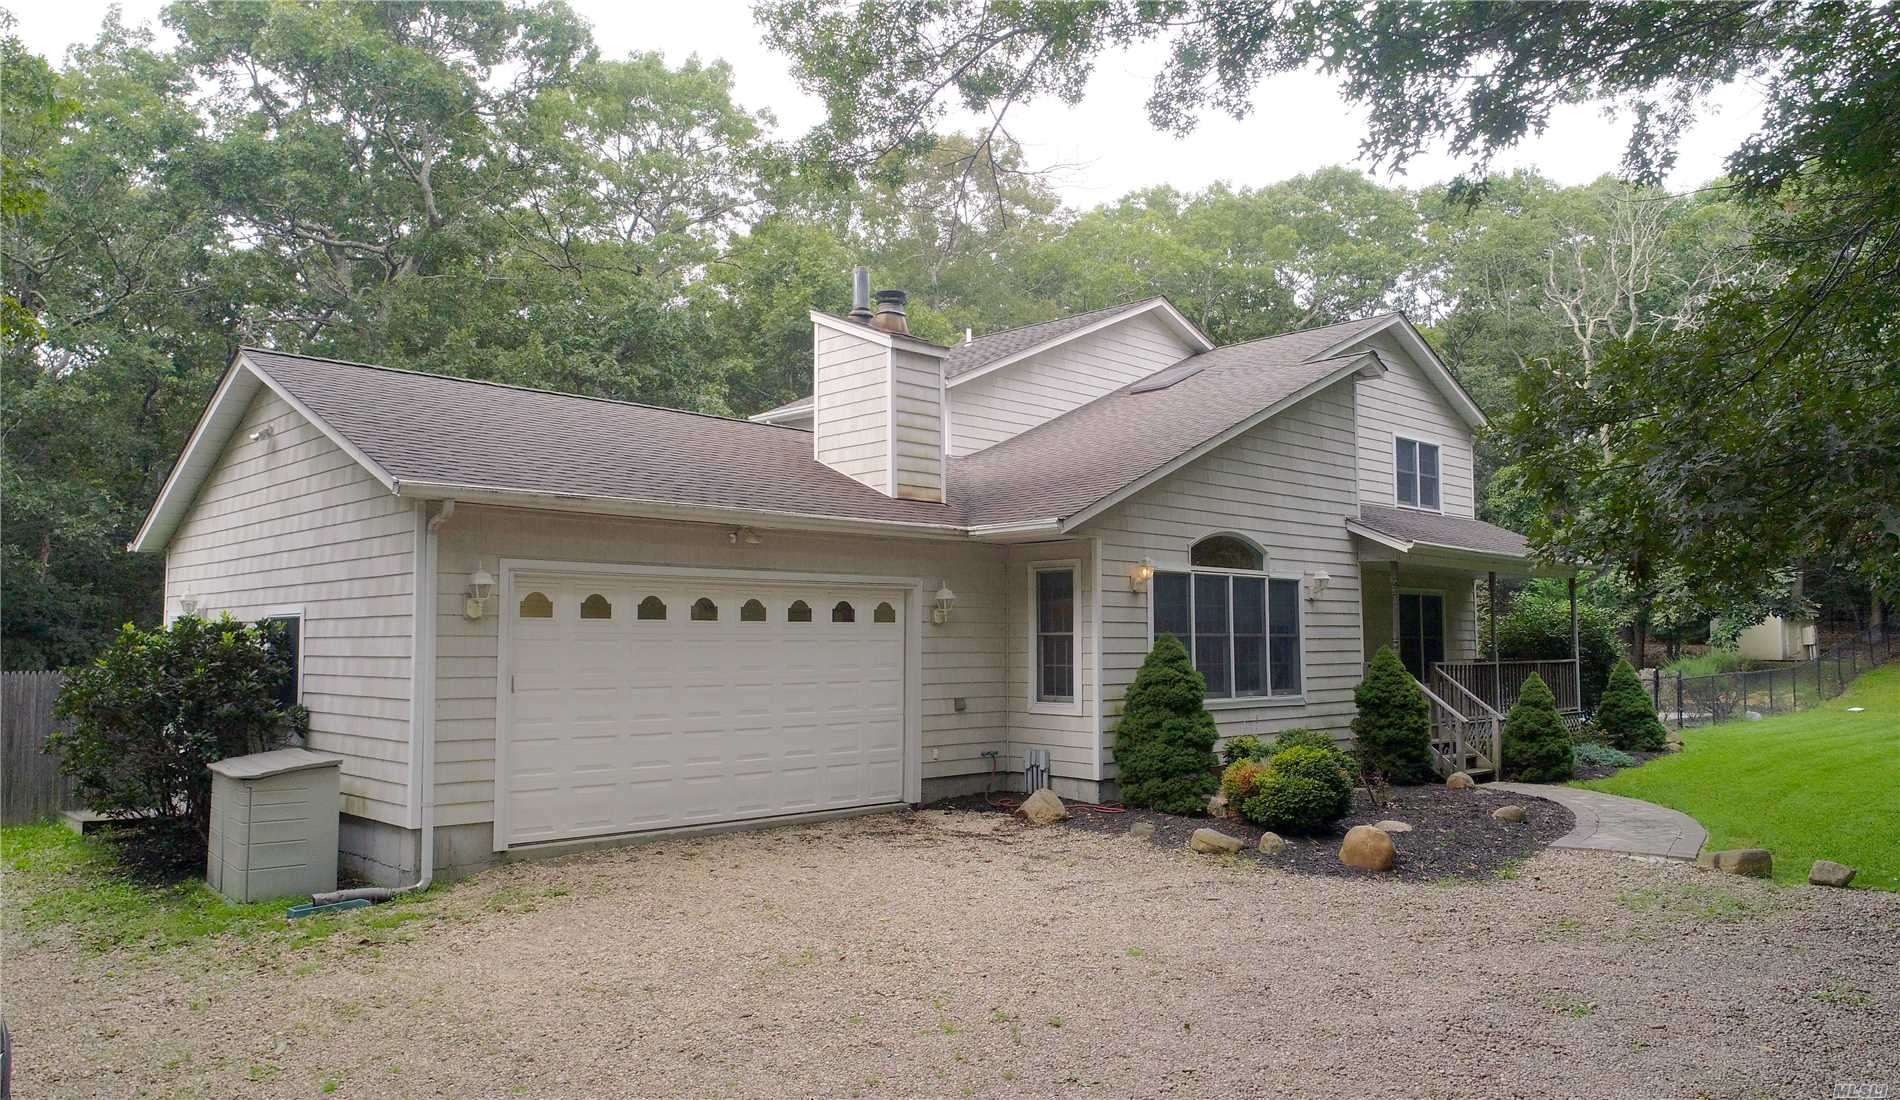 Photo of home for sale at 23 Harbor Blvd, East Hampton NY